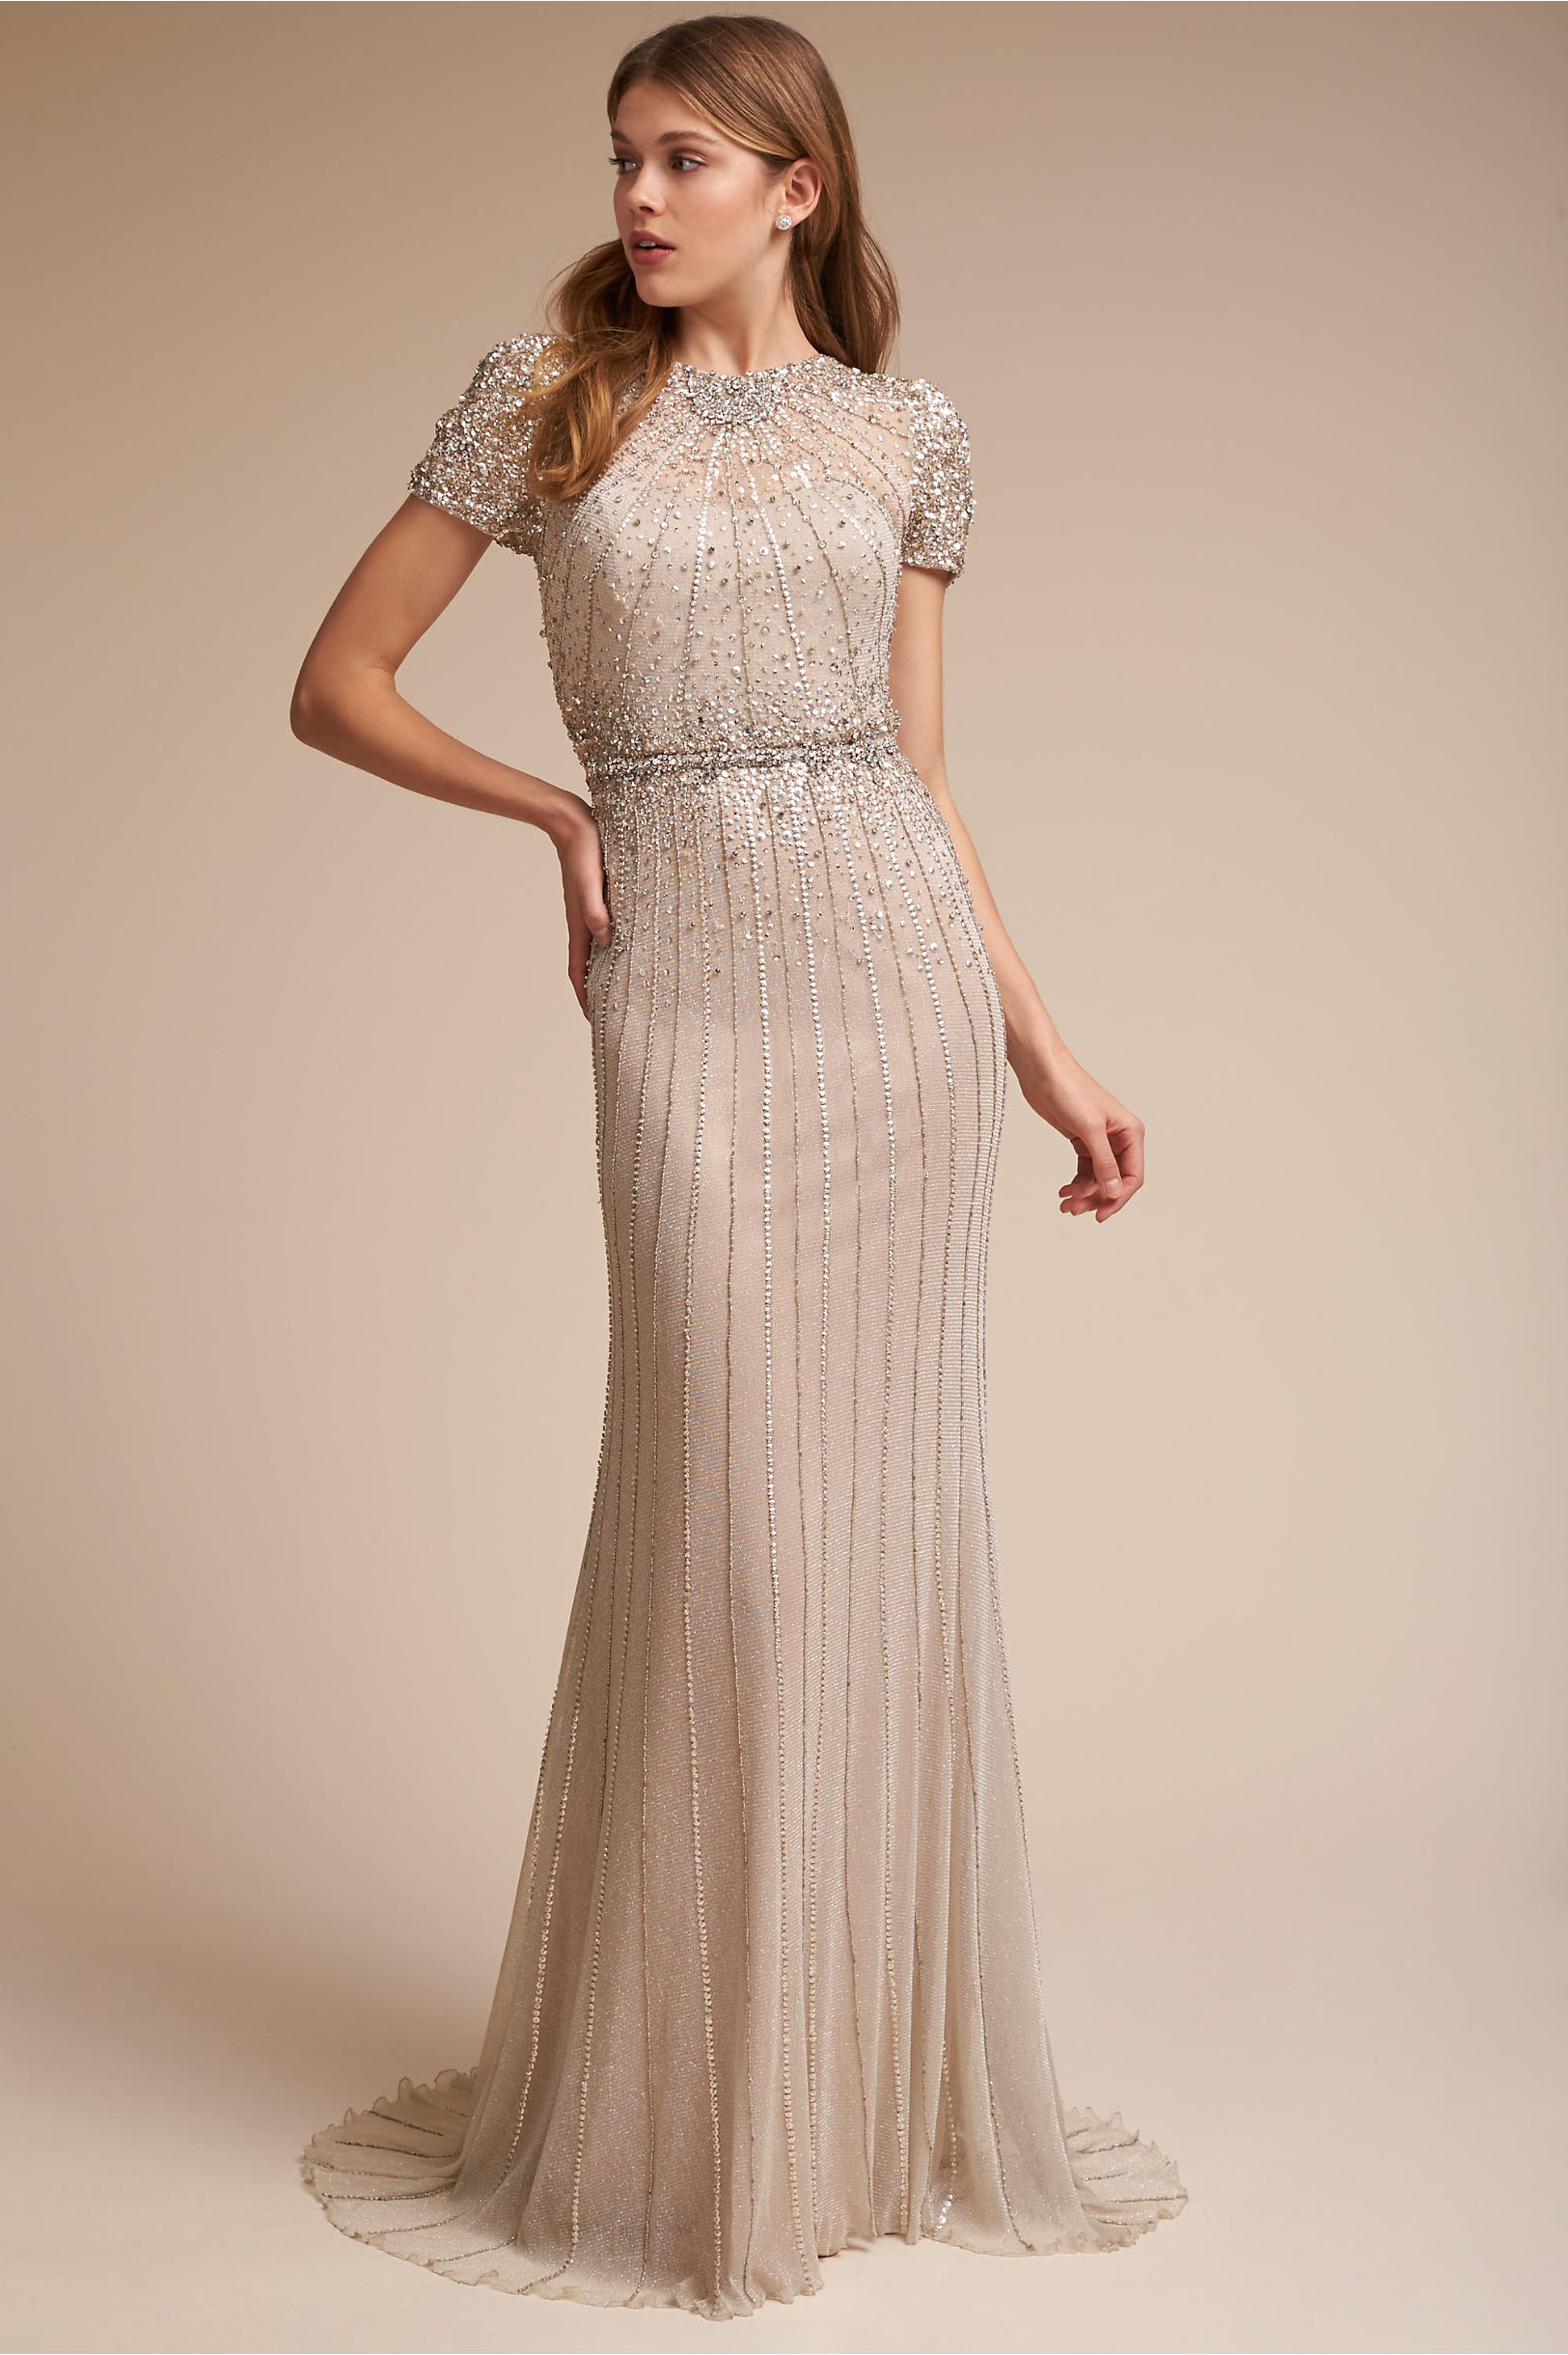 Barton Gown in Sale | BHLDN